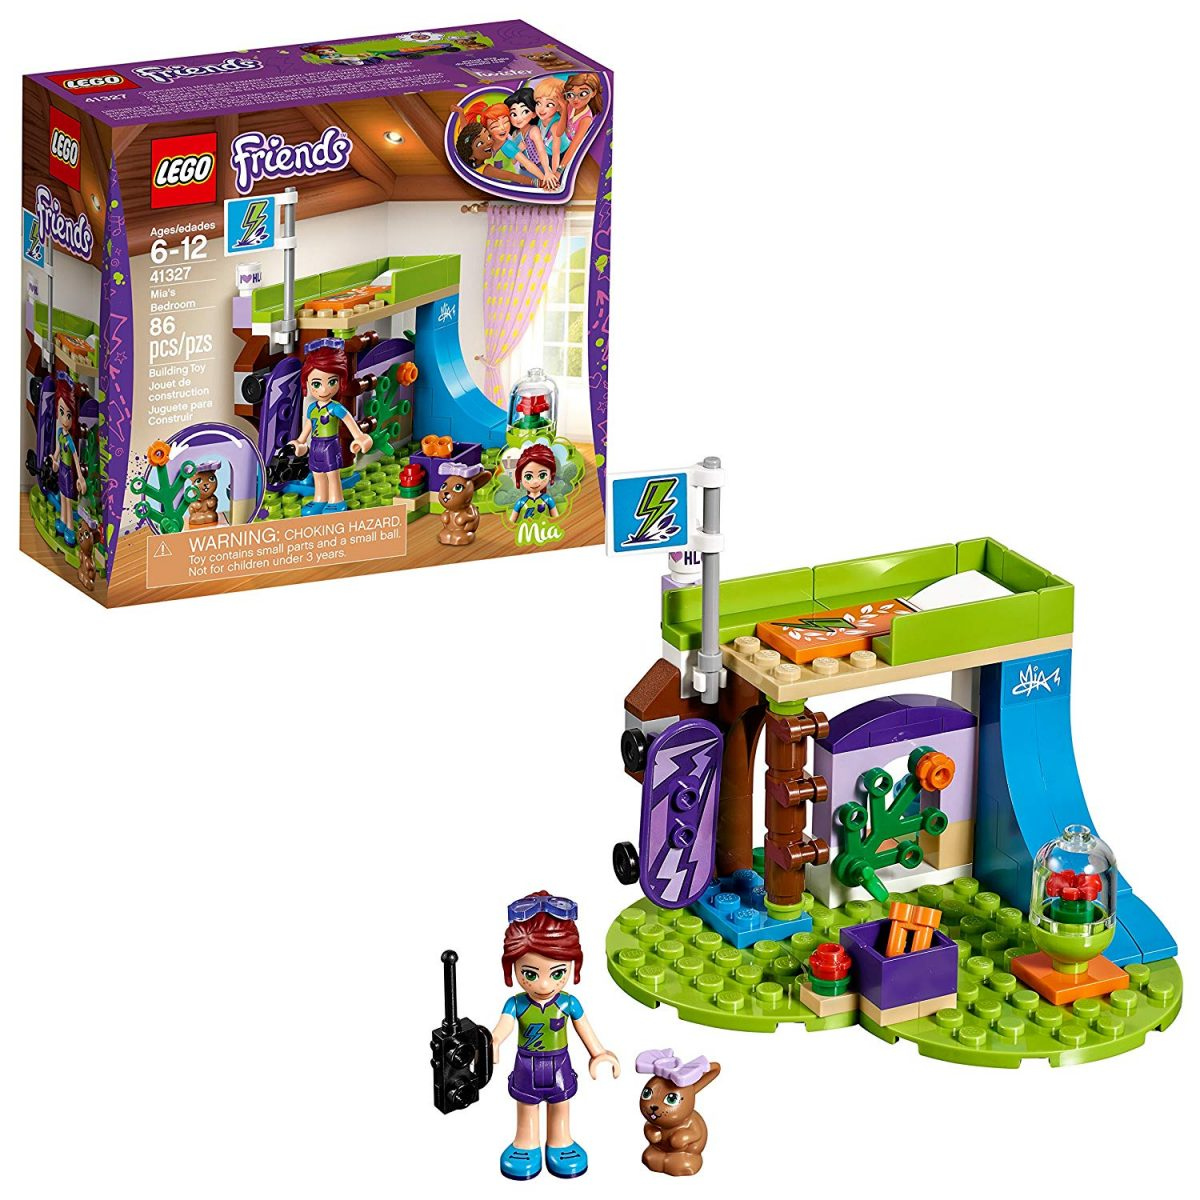 Lego Friends Mias Bedroom 86 Piece Building Set At Only 5 Ships W